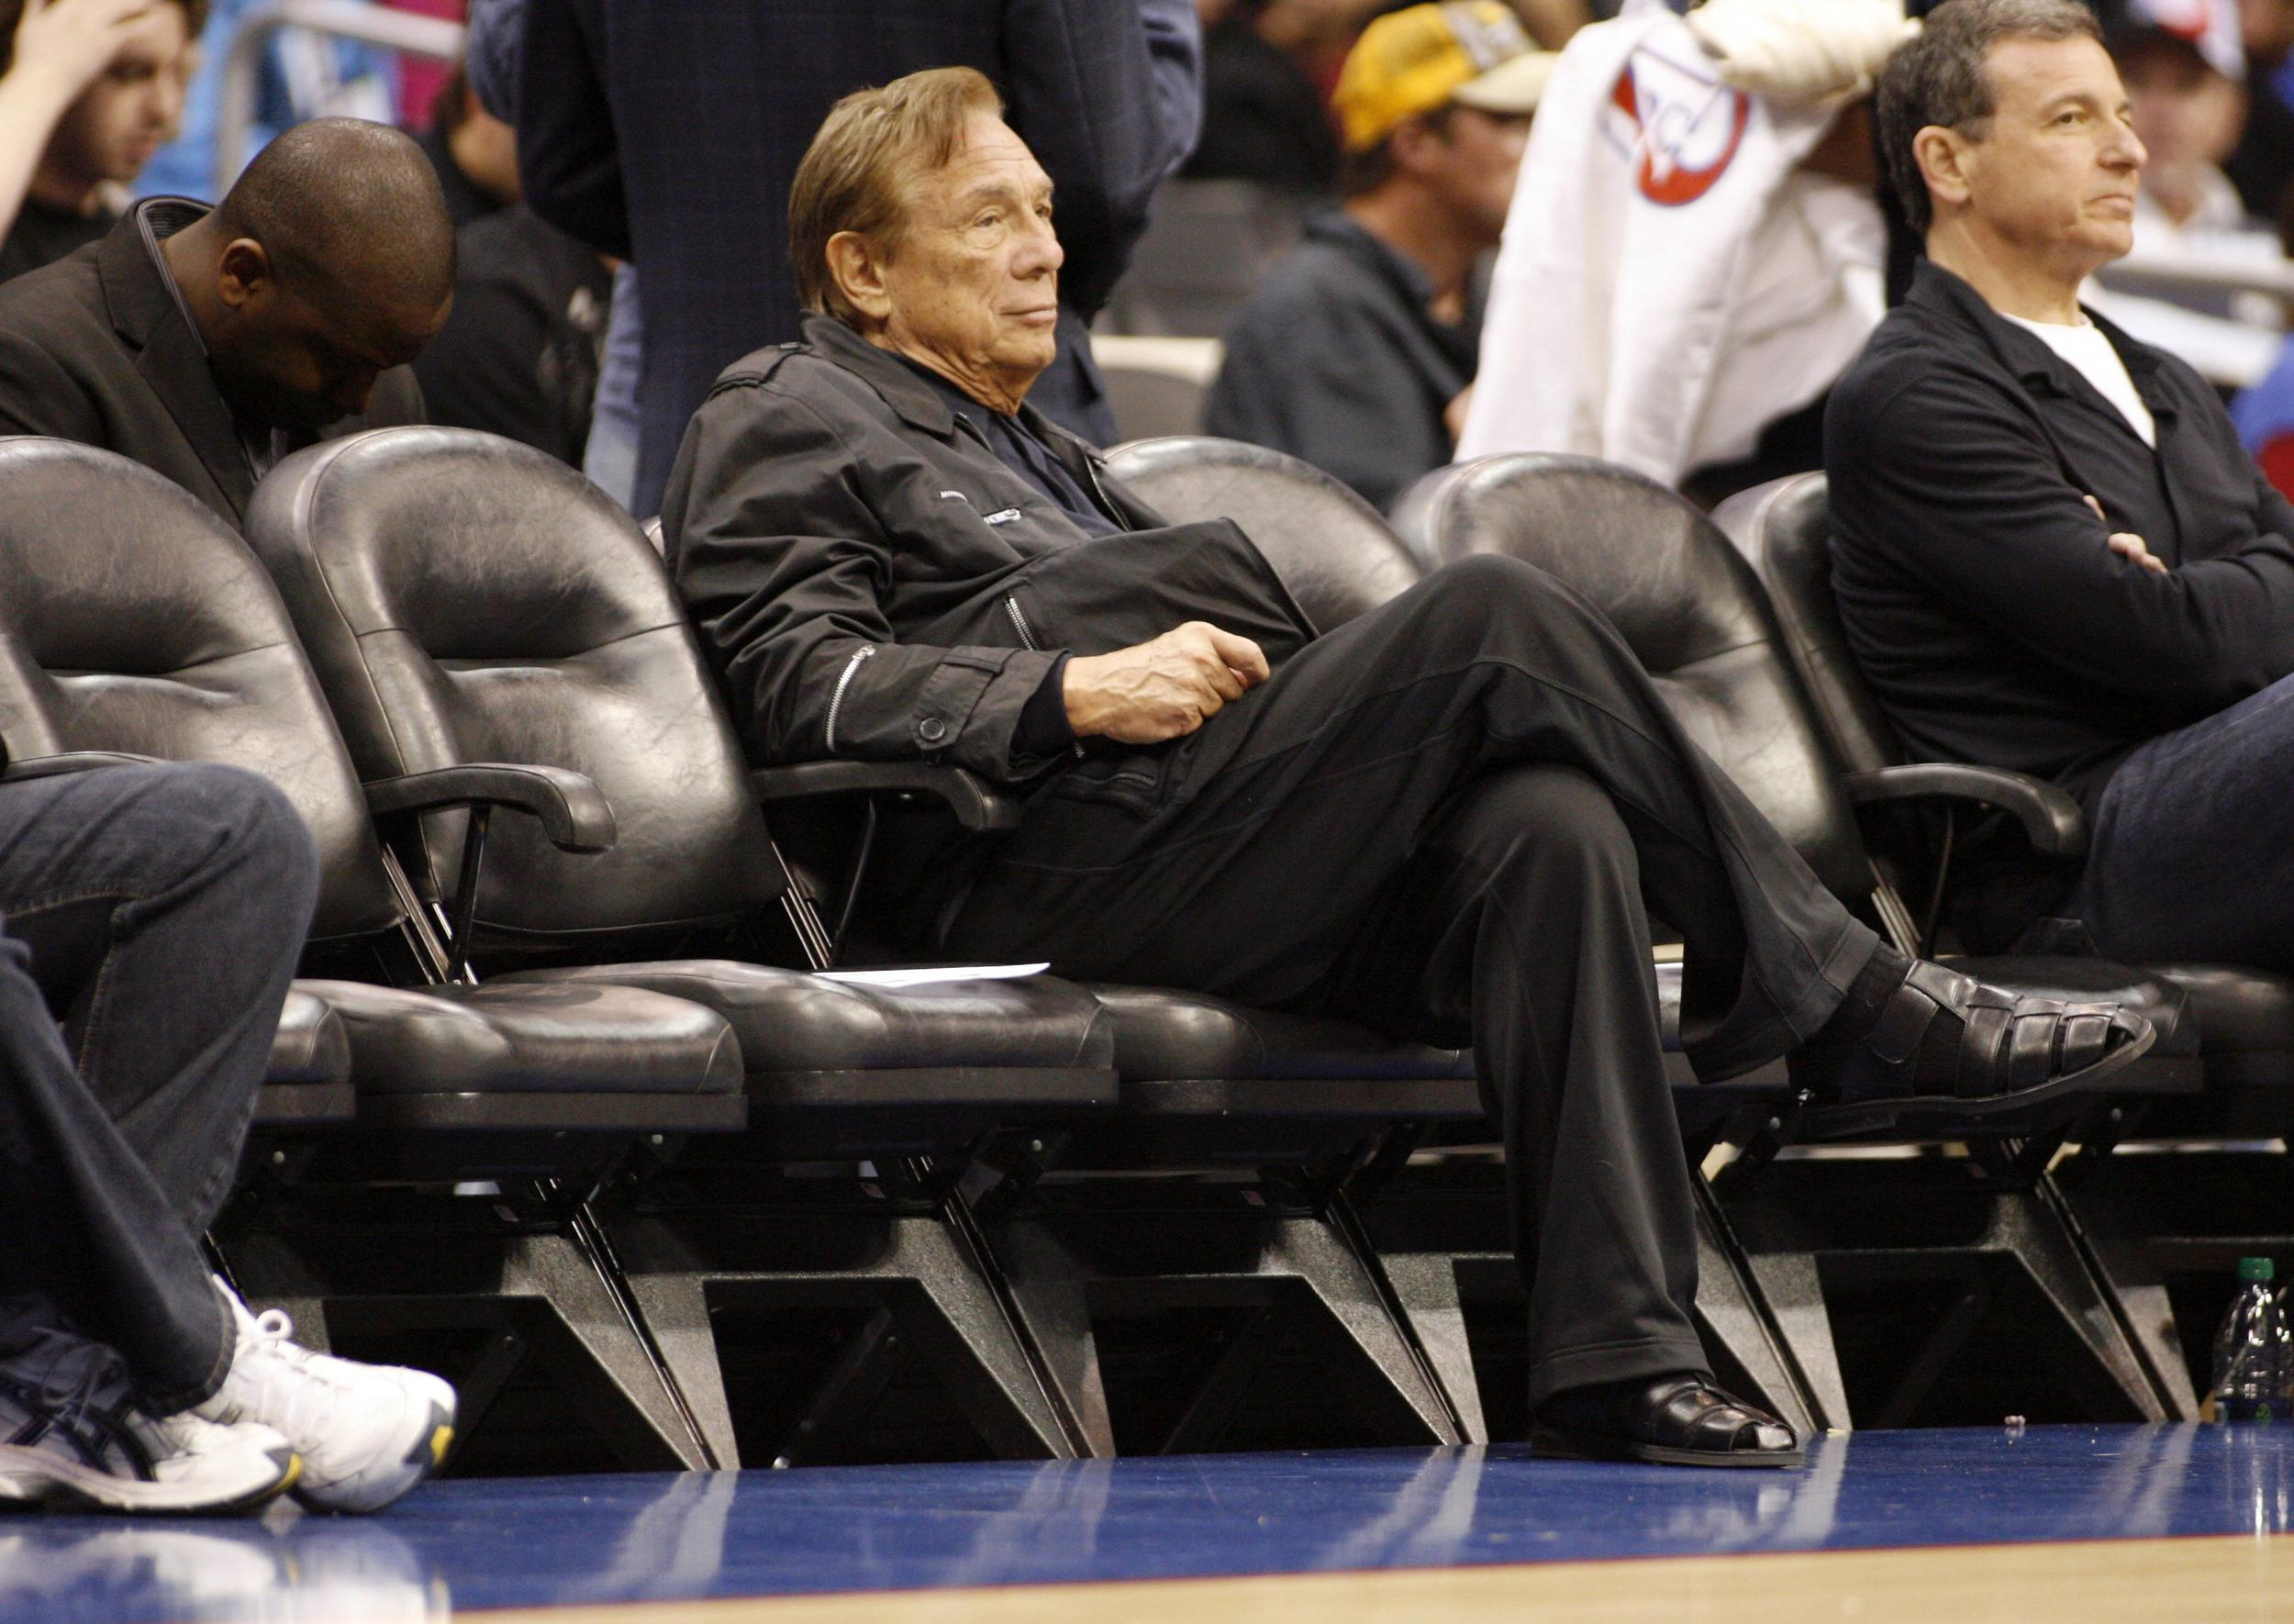 Lost advertising for the Los Angeles Clippers over owner Donald Sterling's alleged remarks, could hurt all the NBA's teams because of revenue-sharing.